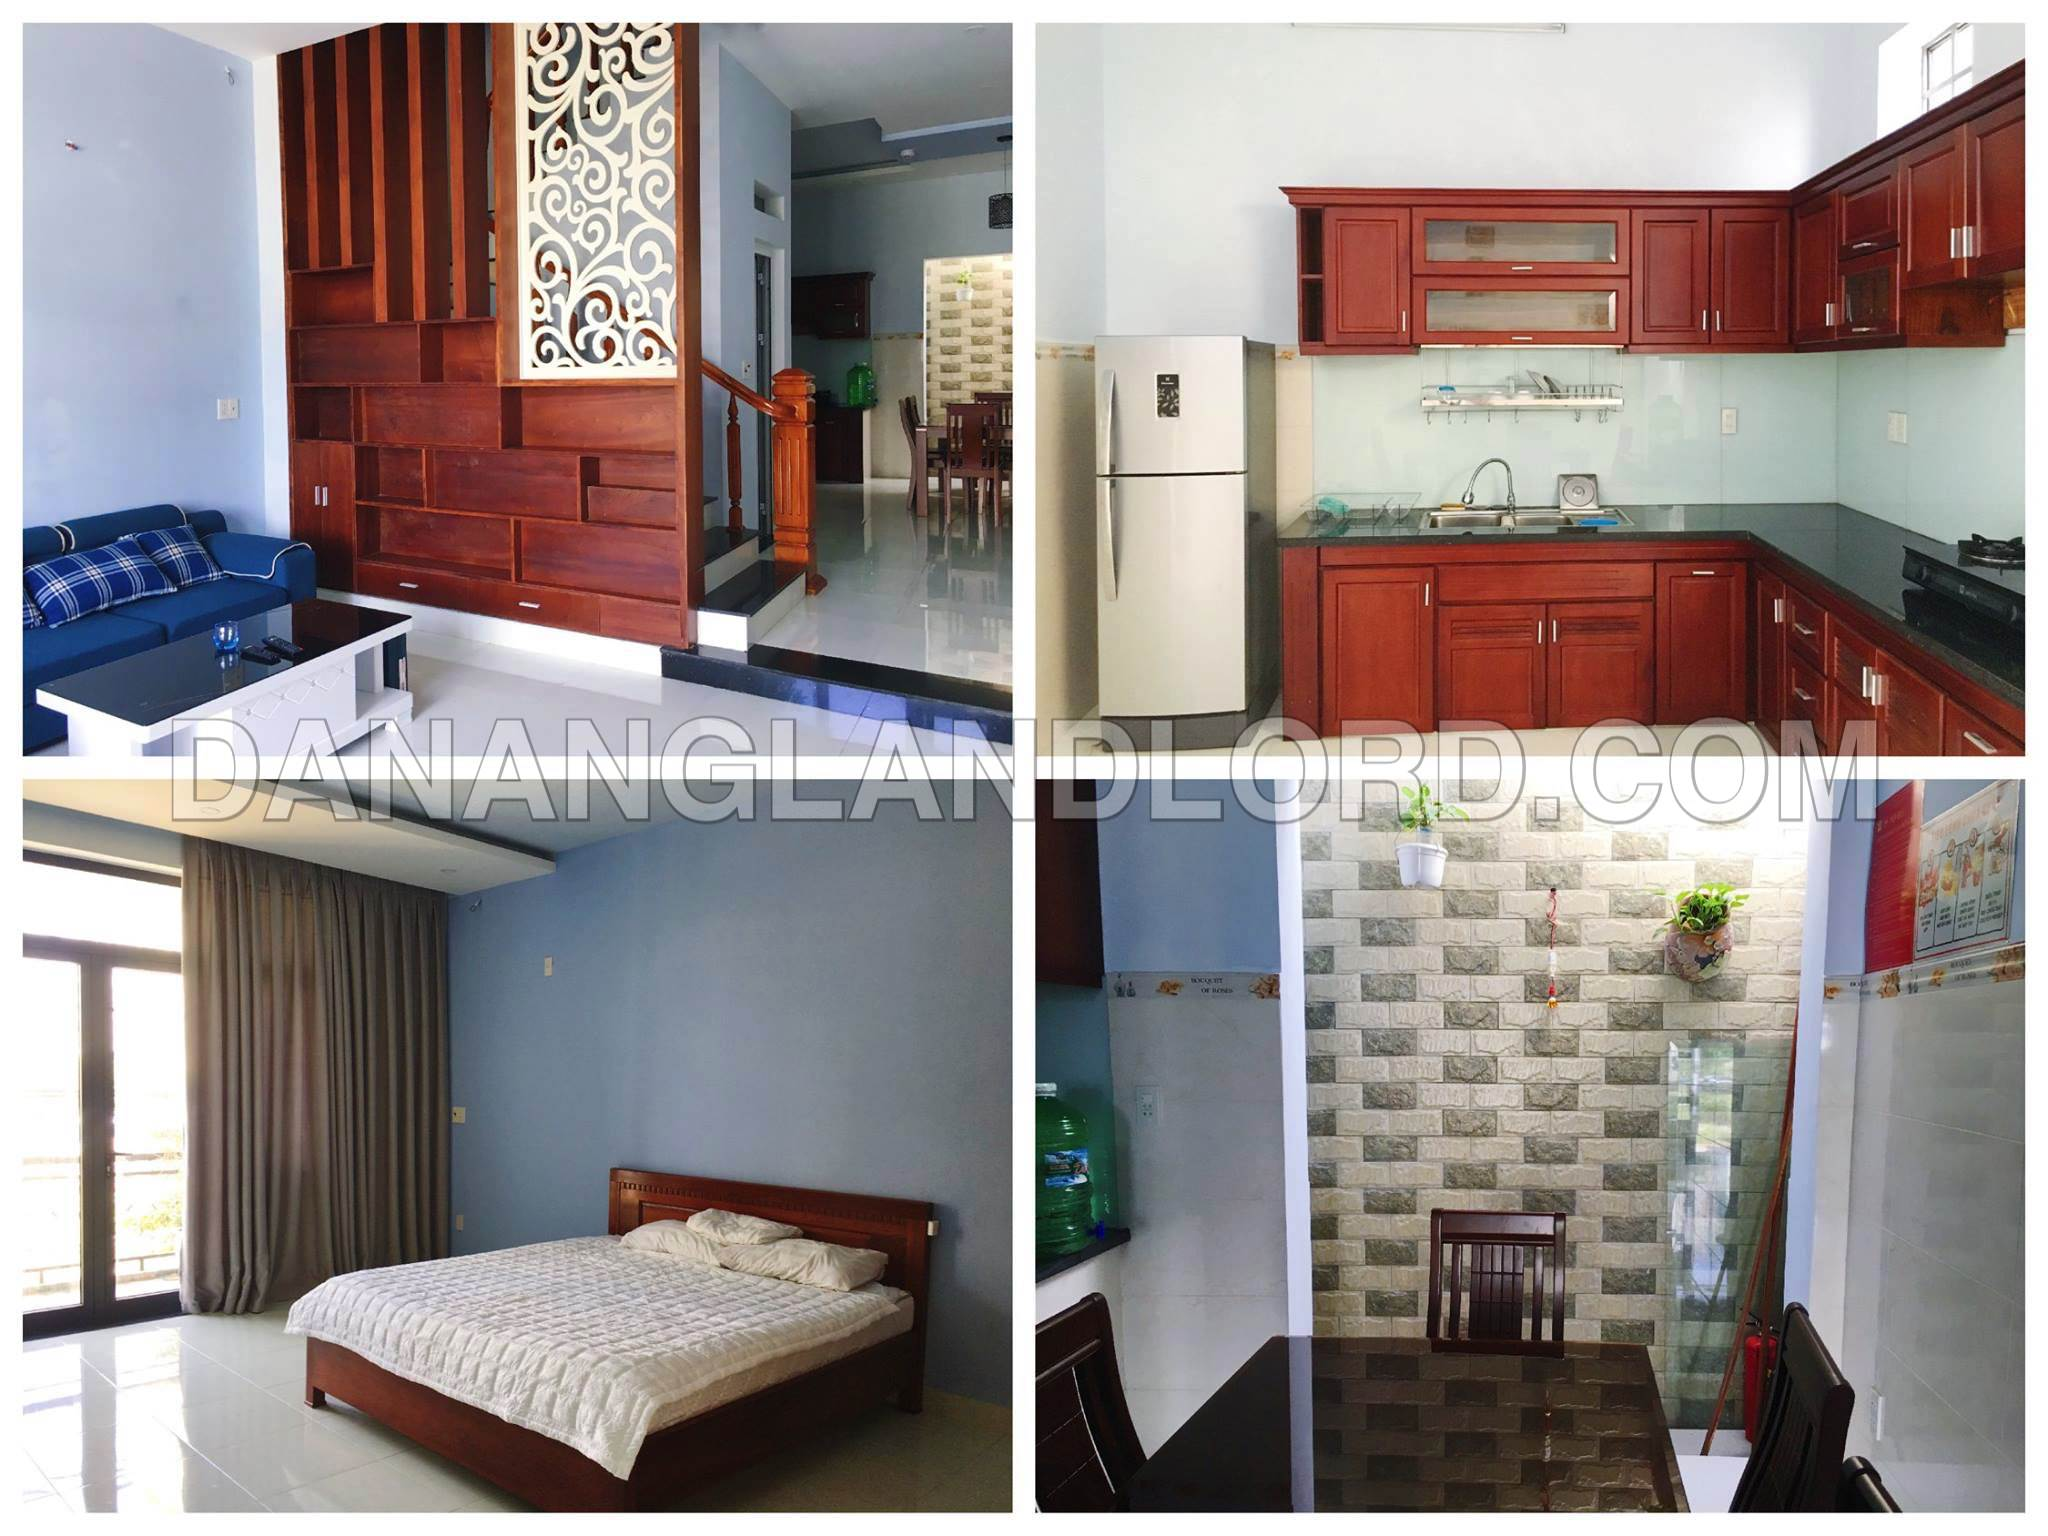 The 4 bedroom house in An Thuong area, 300m from the beach